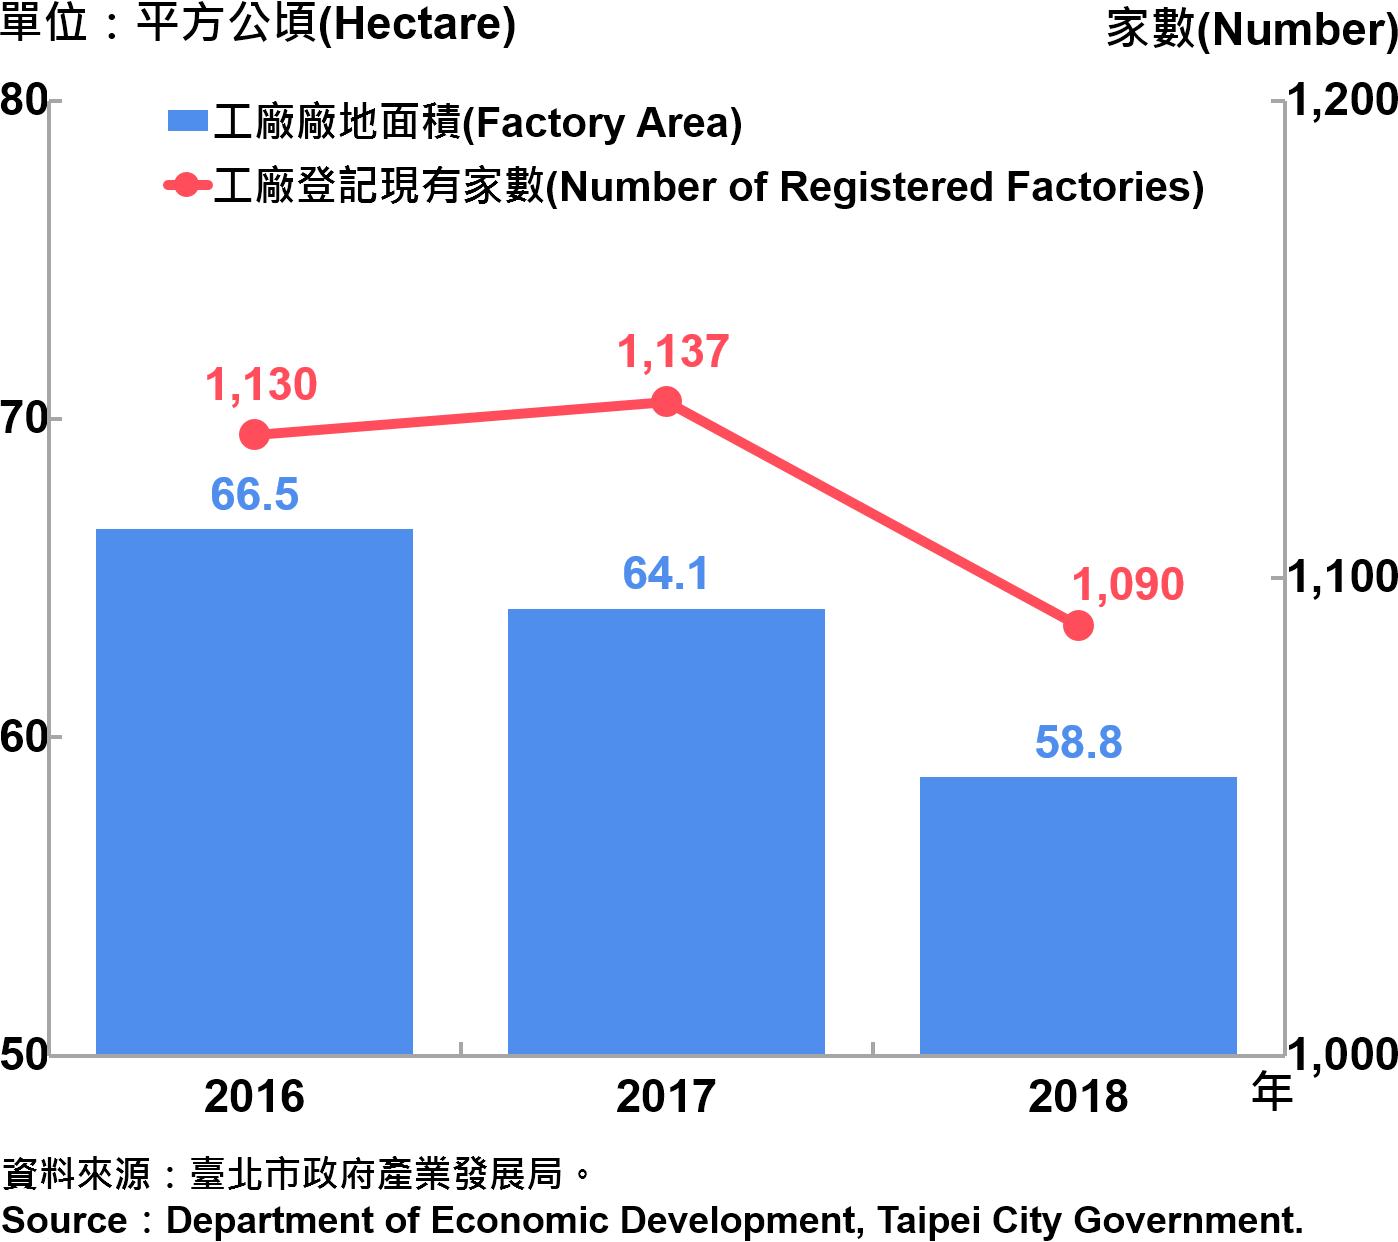 臺北市工廠登記家數及廠地面積—2018 Number of Factories Registered and Factory Lands in Taipei—2018